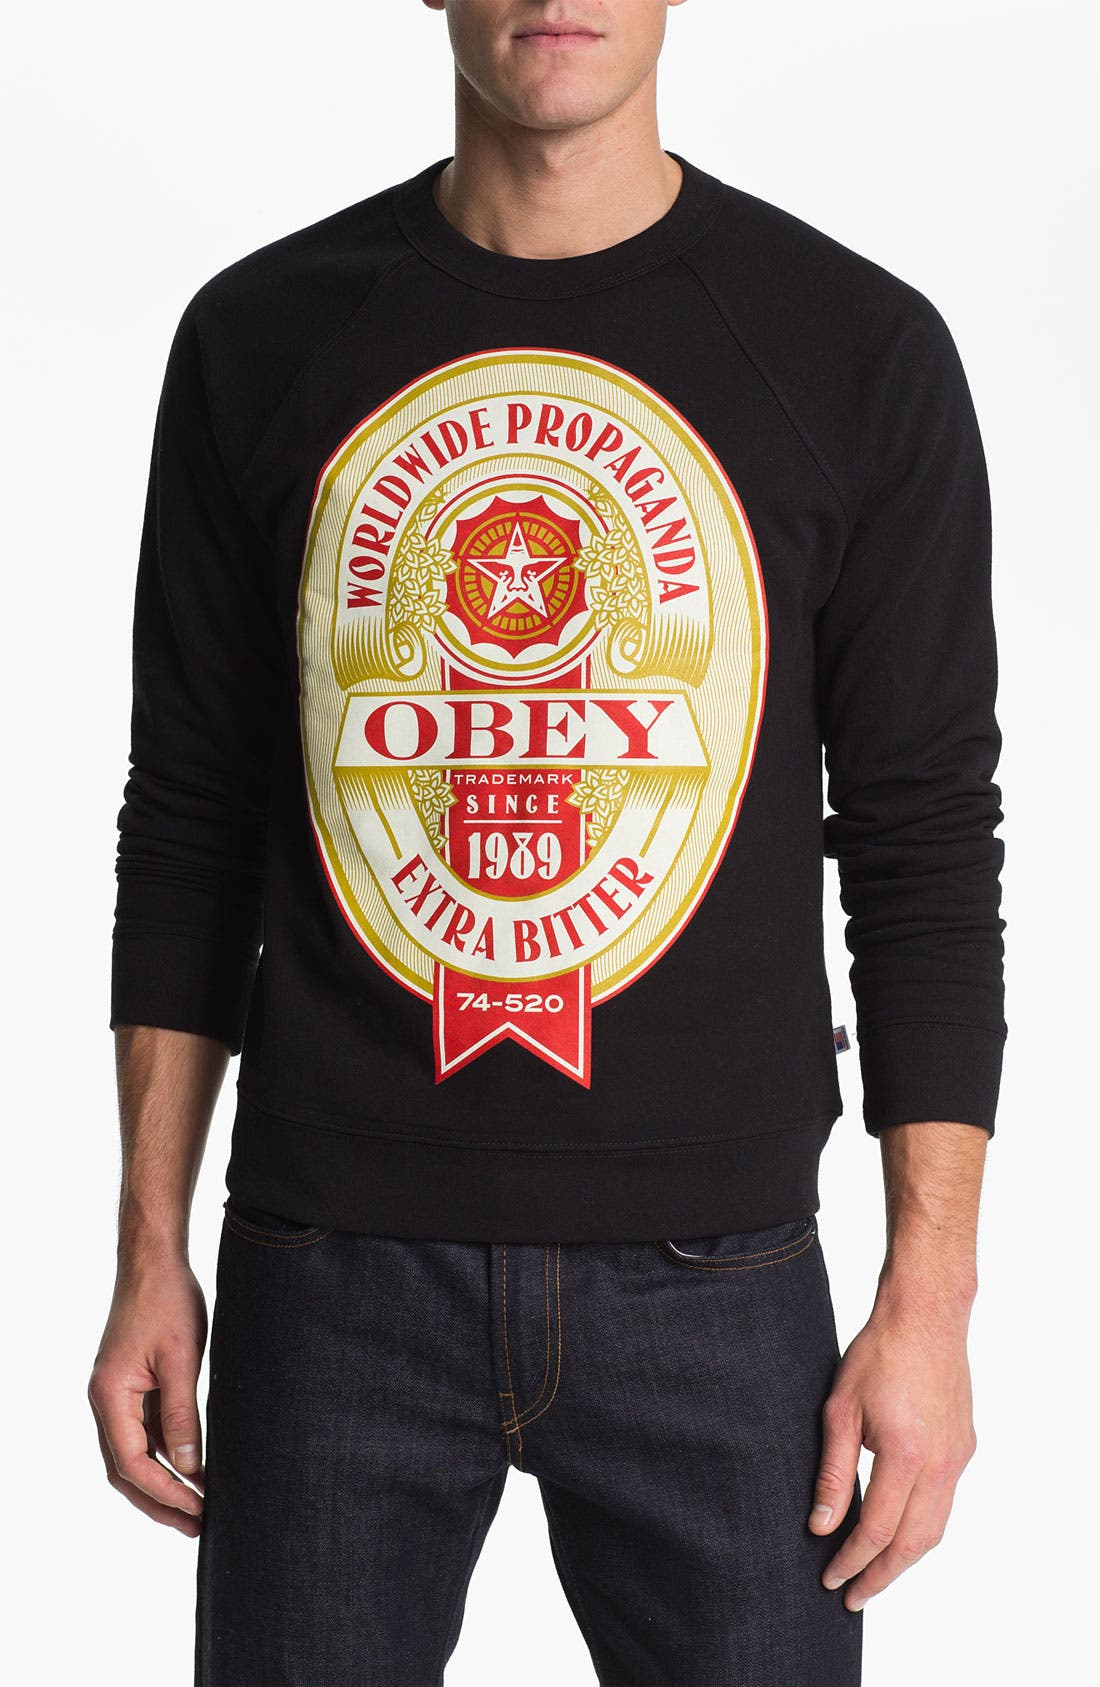 Alternate Image 1 Selected - Obey 'Extra Bitter' Crewneck Fleece Sweatshirt